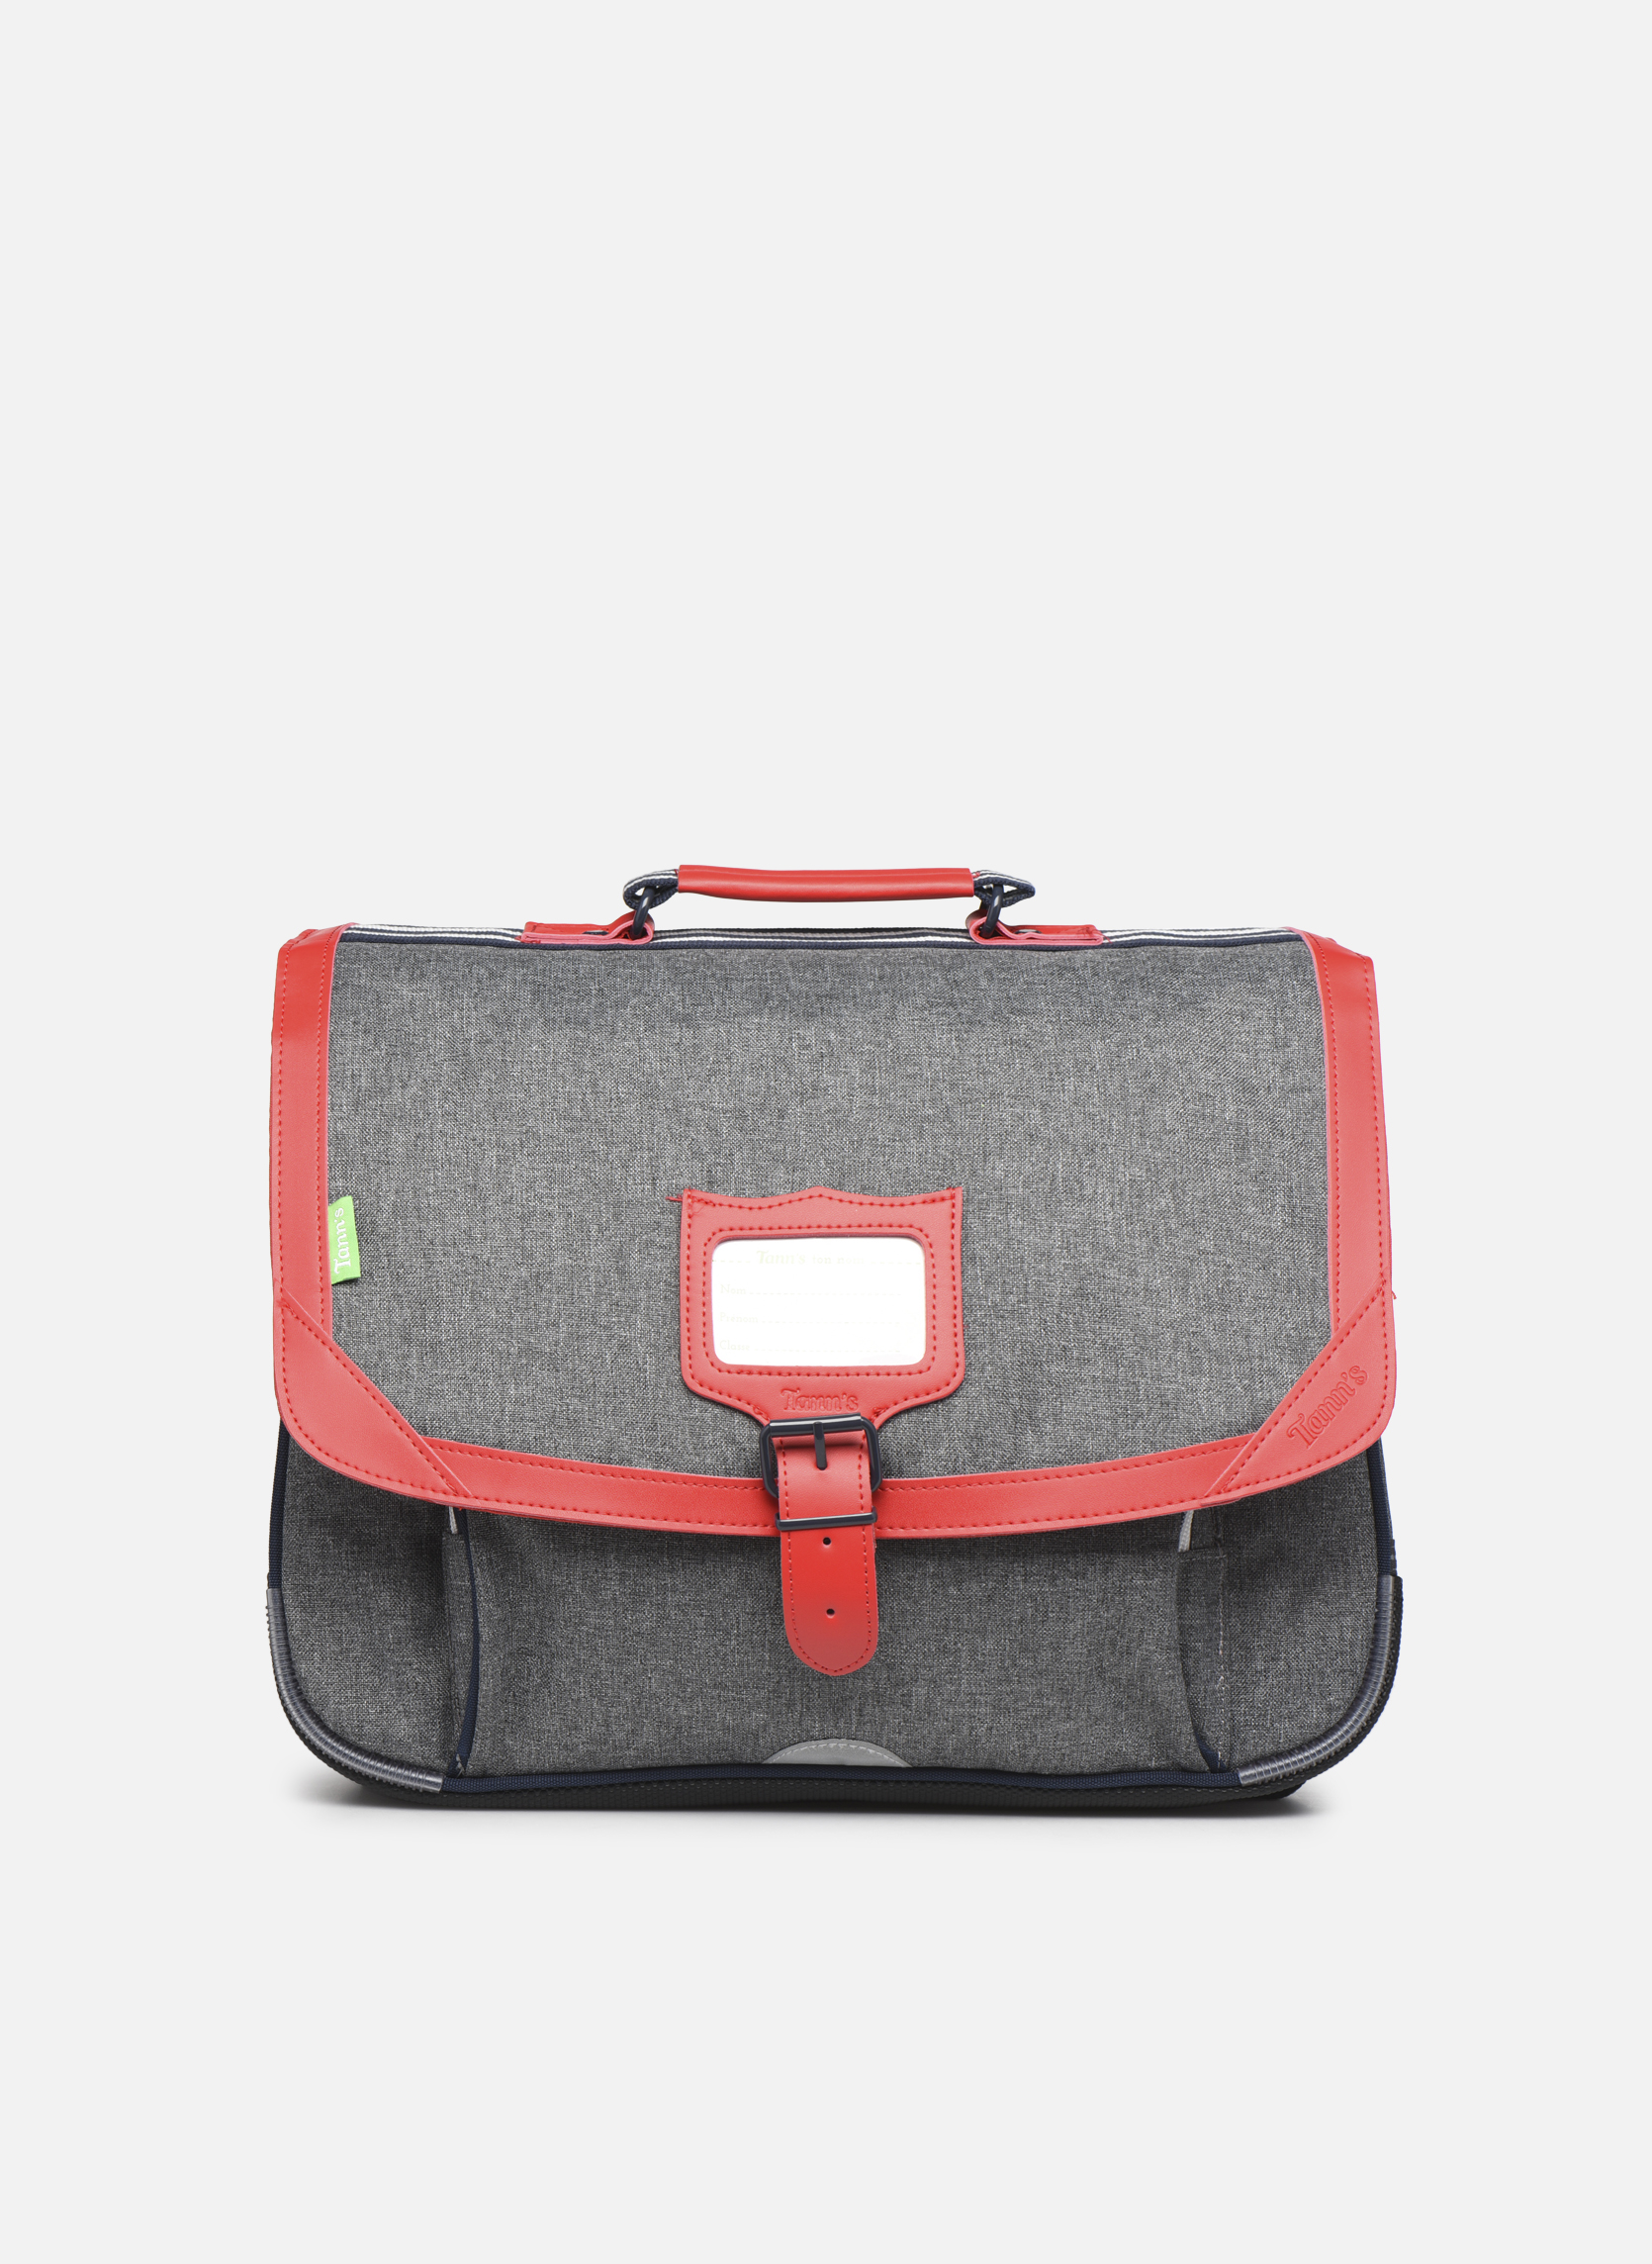 Cartable 38cm CLASSIC Gris chiné/rouge